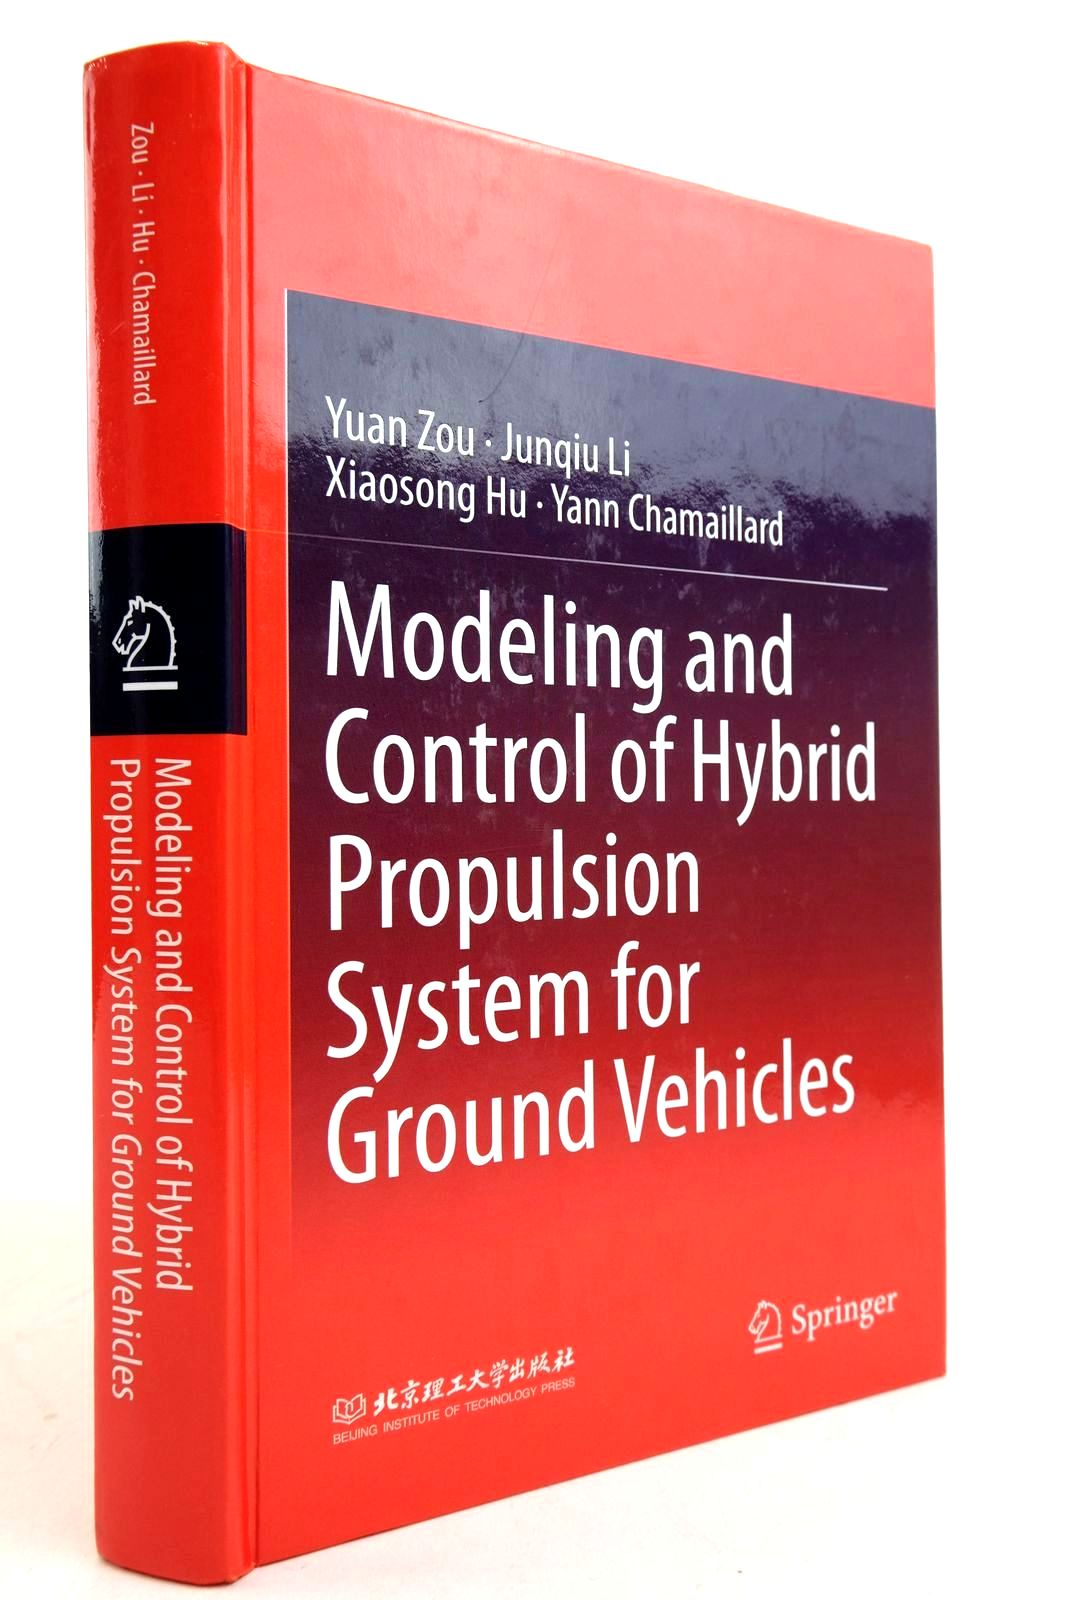 Photo of MODELING AND CONTROL OF HYBRID PROPULSION SYSTEM FOR GROUND VEHICLES- Stock Number: 2134918